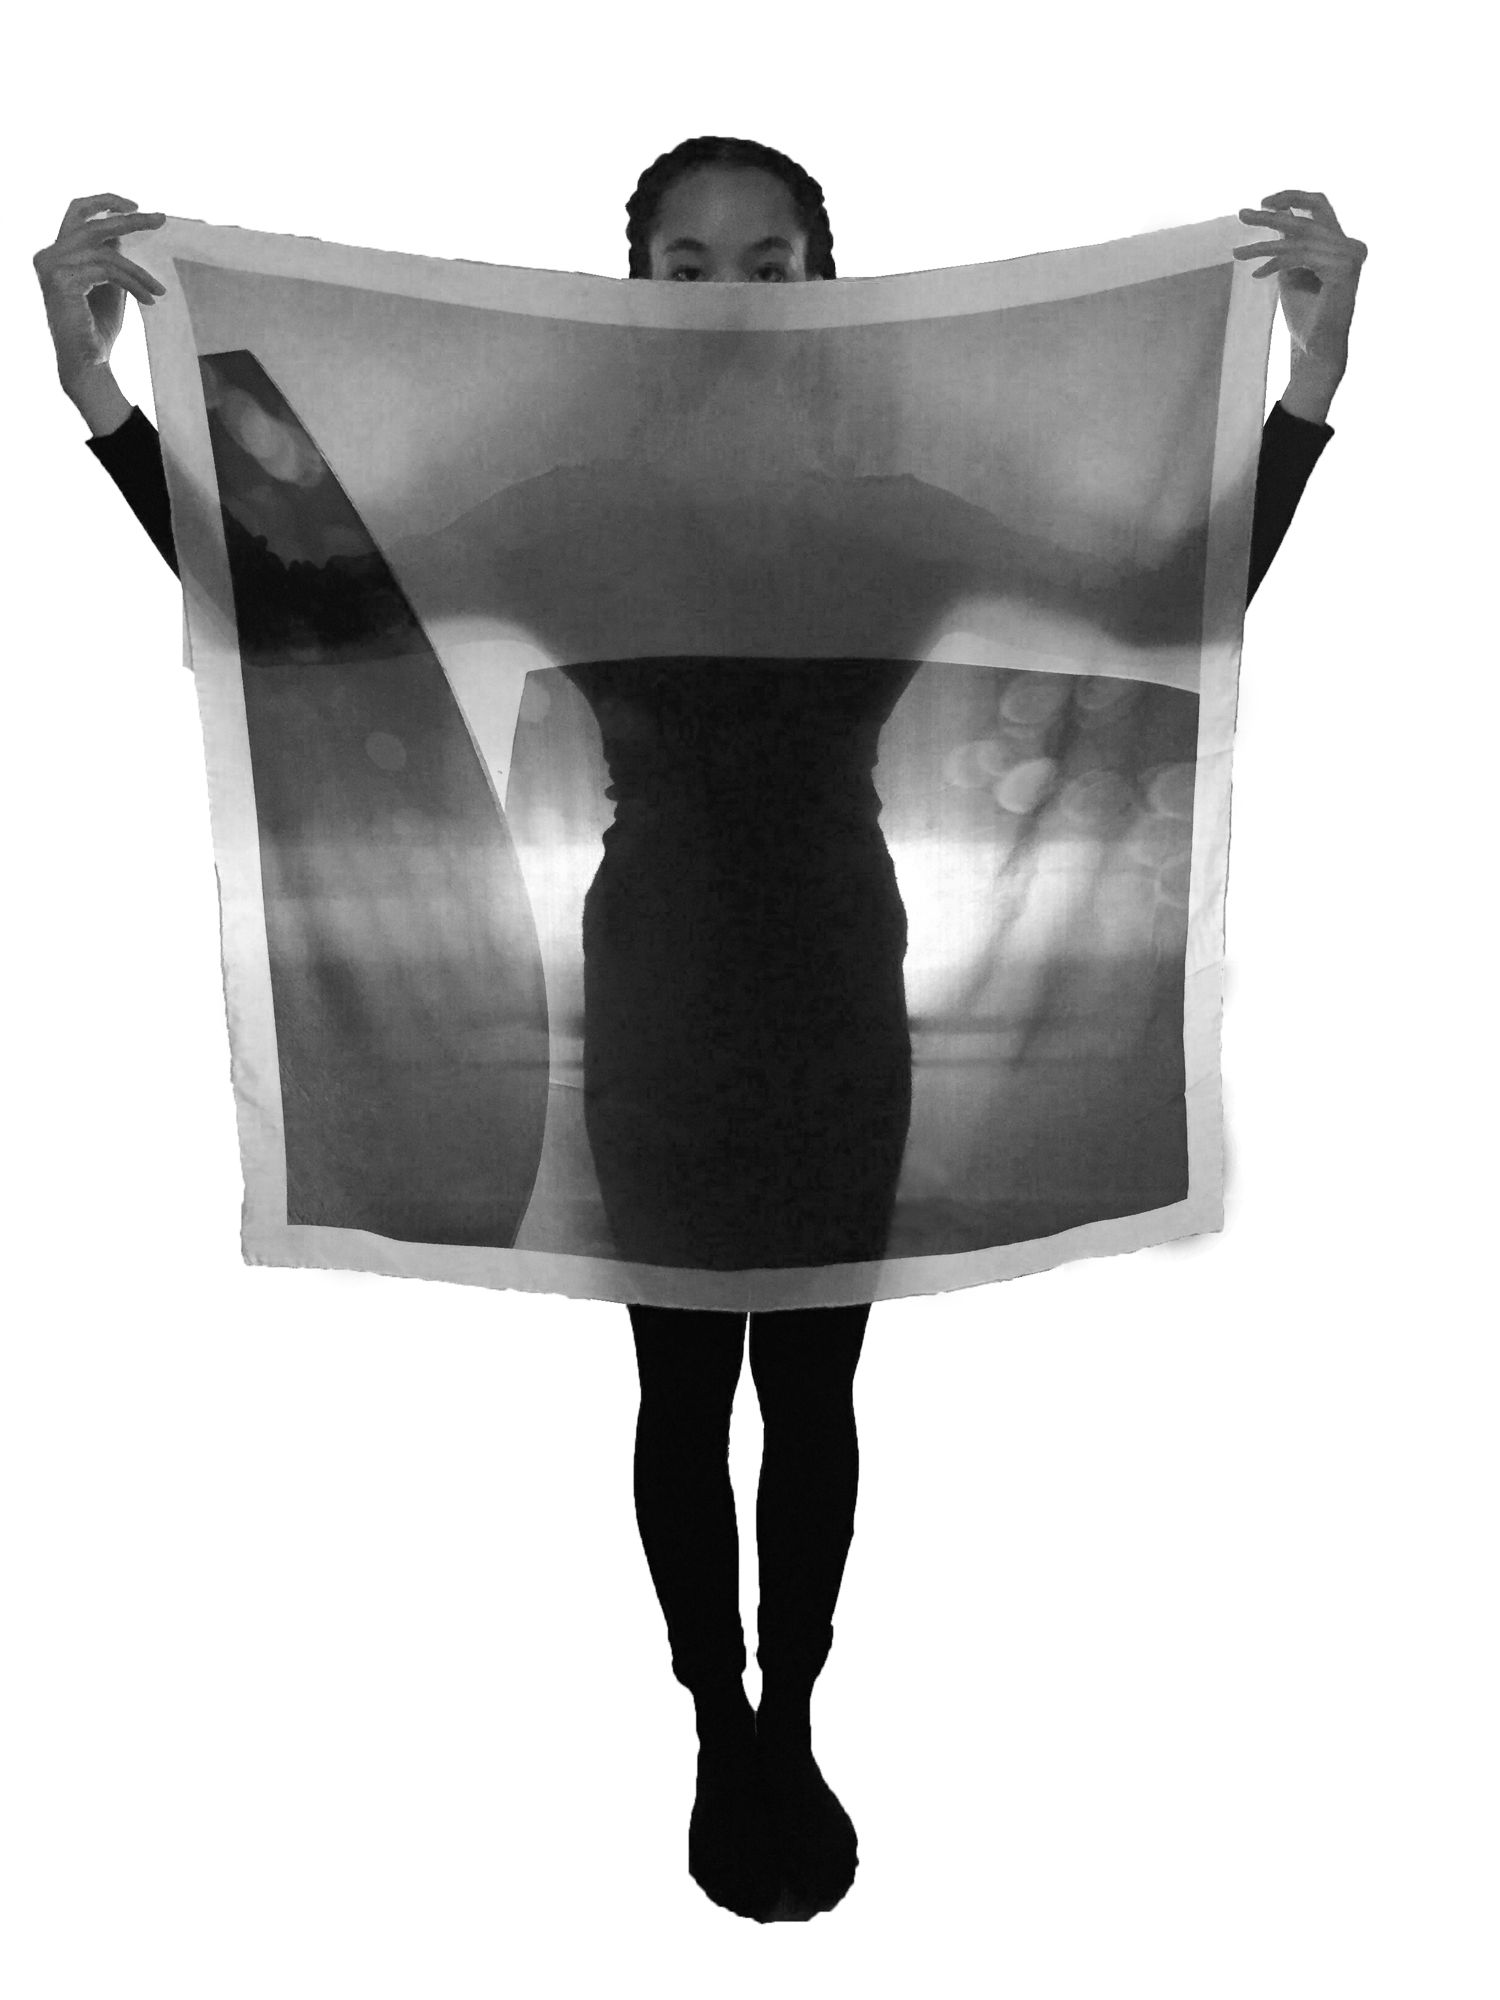 """Polaris, approximately 40""""x40"""", 12 mm crepe de chine and heavily backlit."""